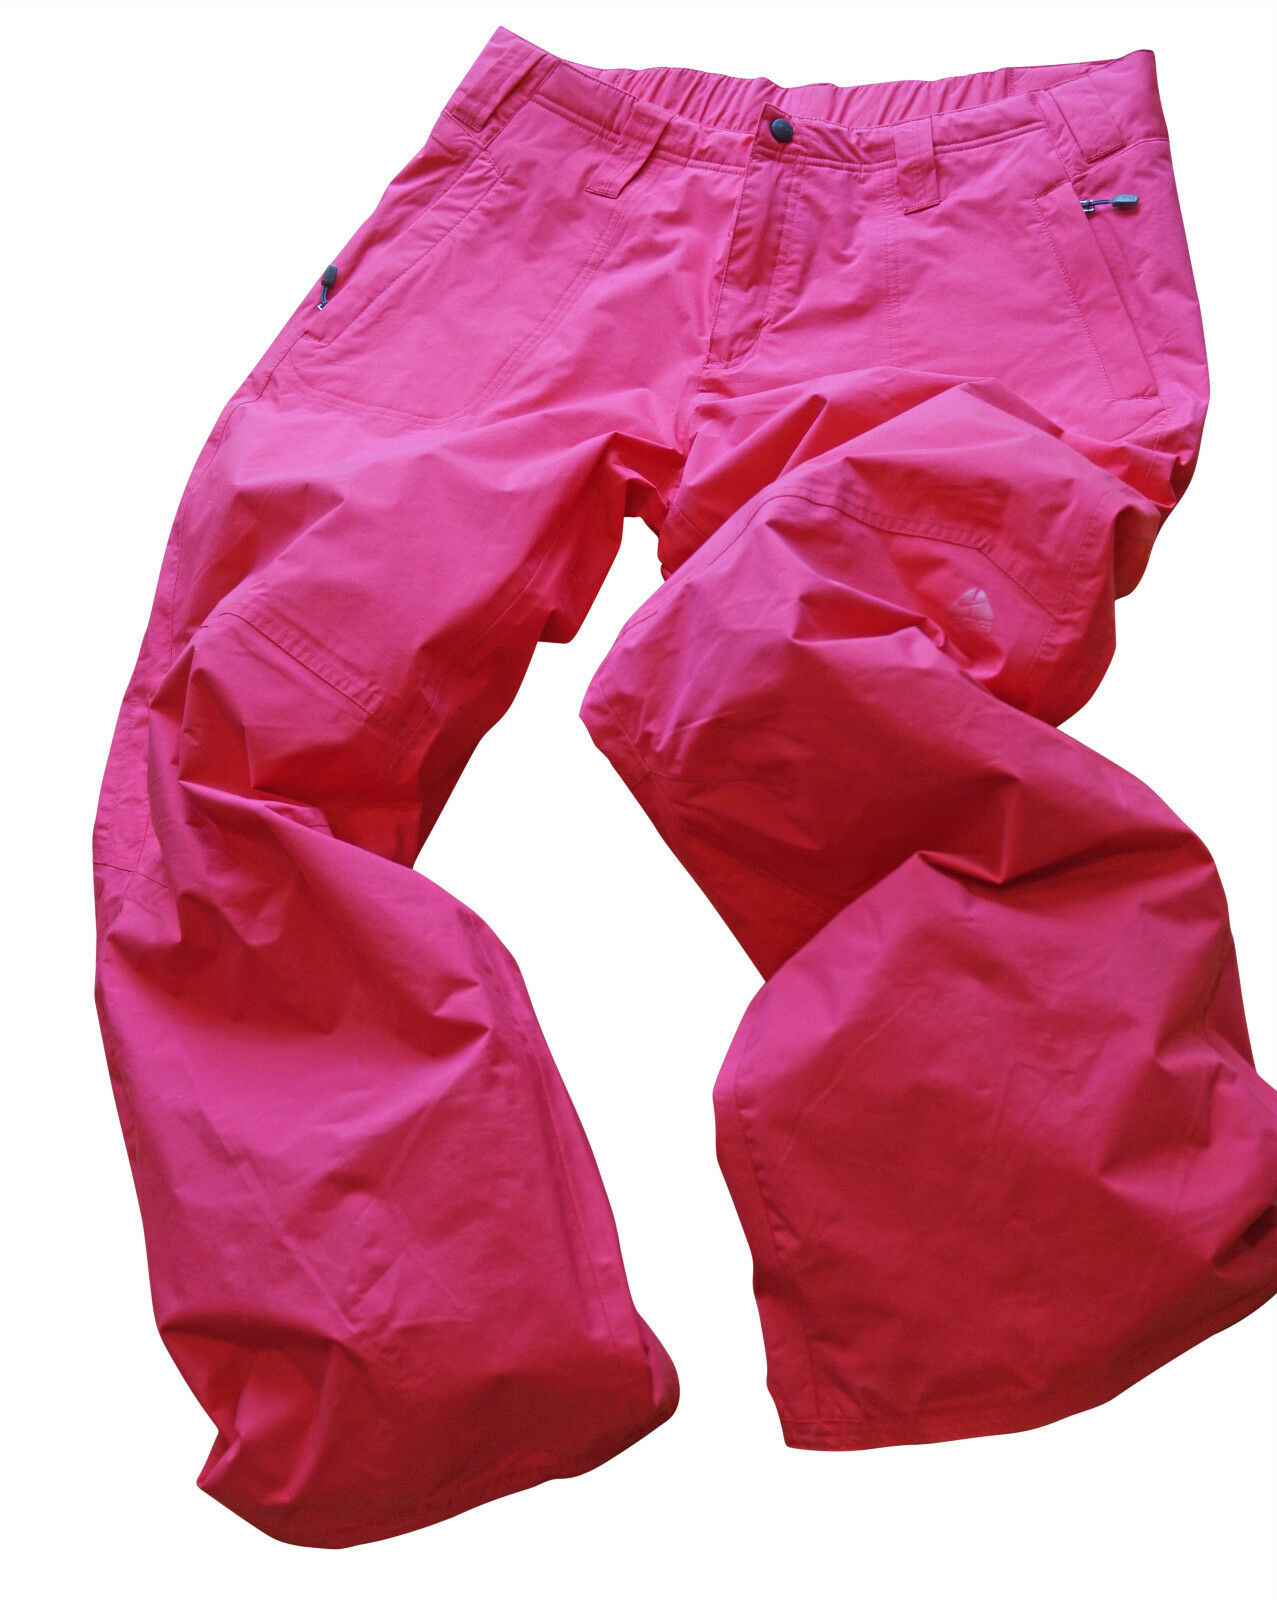 Nike womens acg stormfit ladies ski pants trousers  pink xl  save up to 70% discount